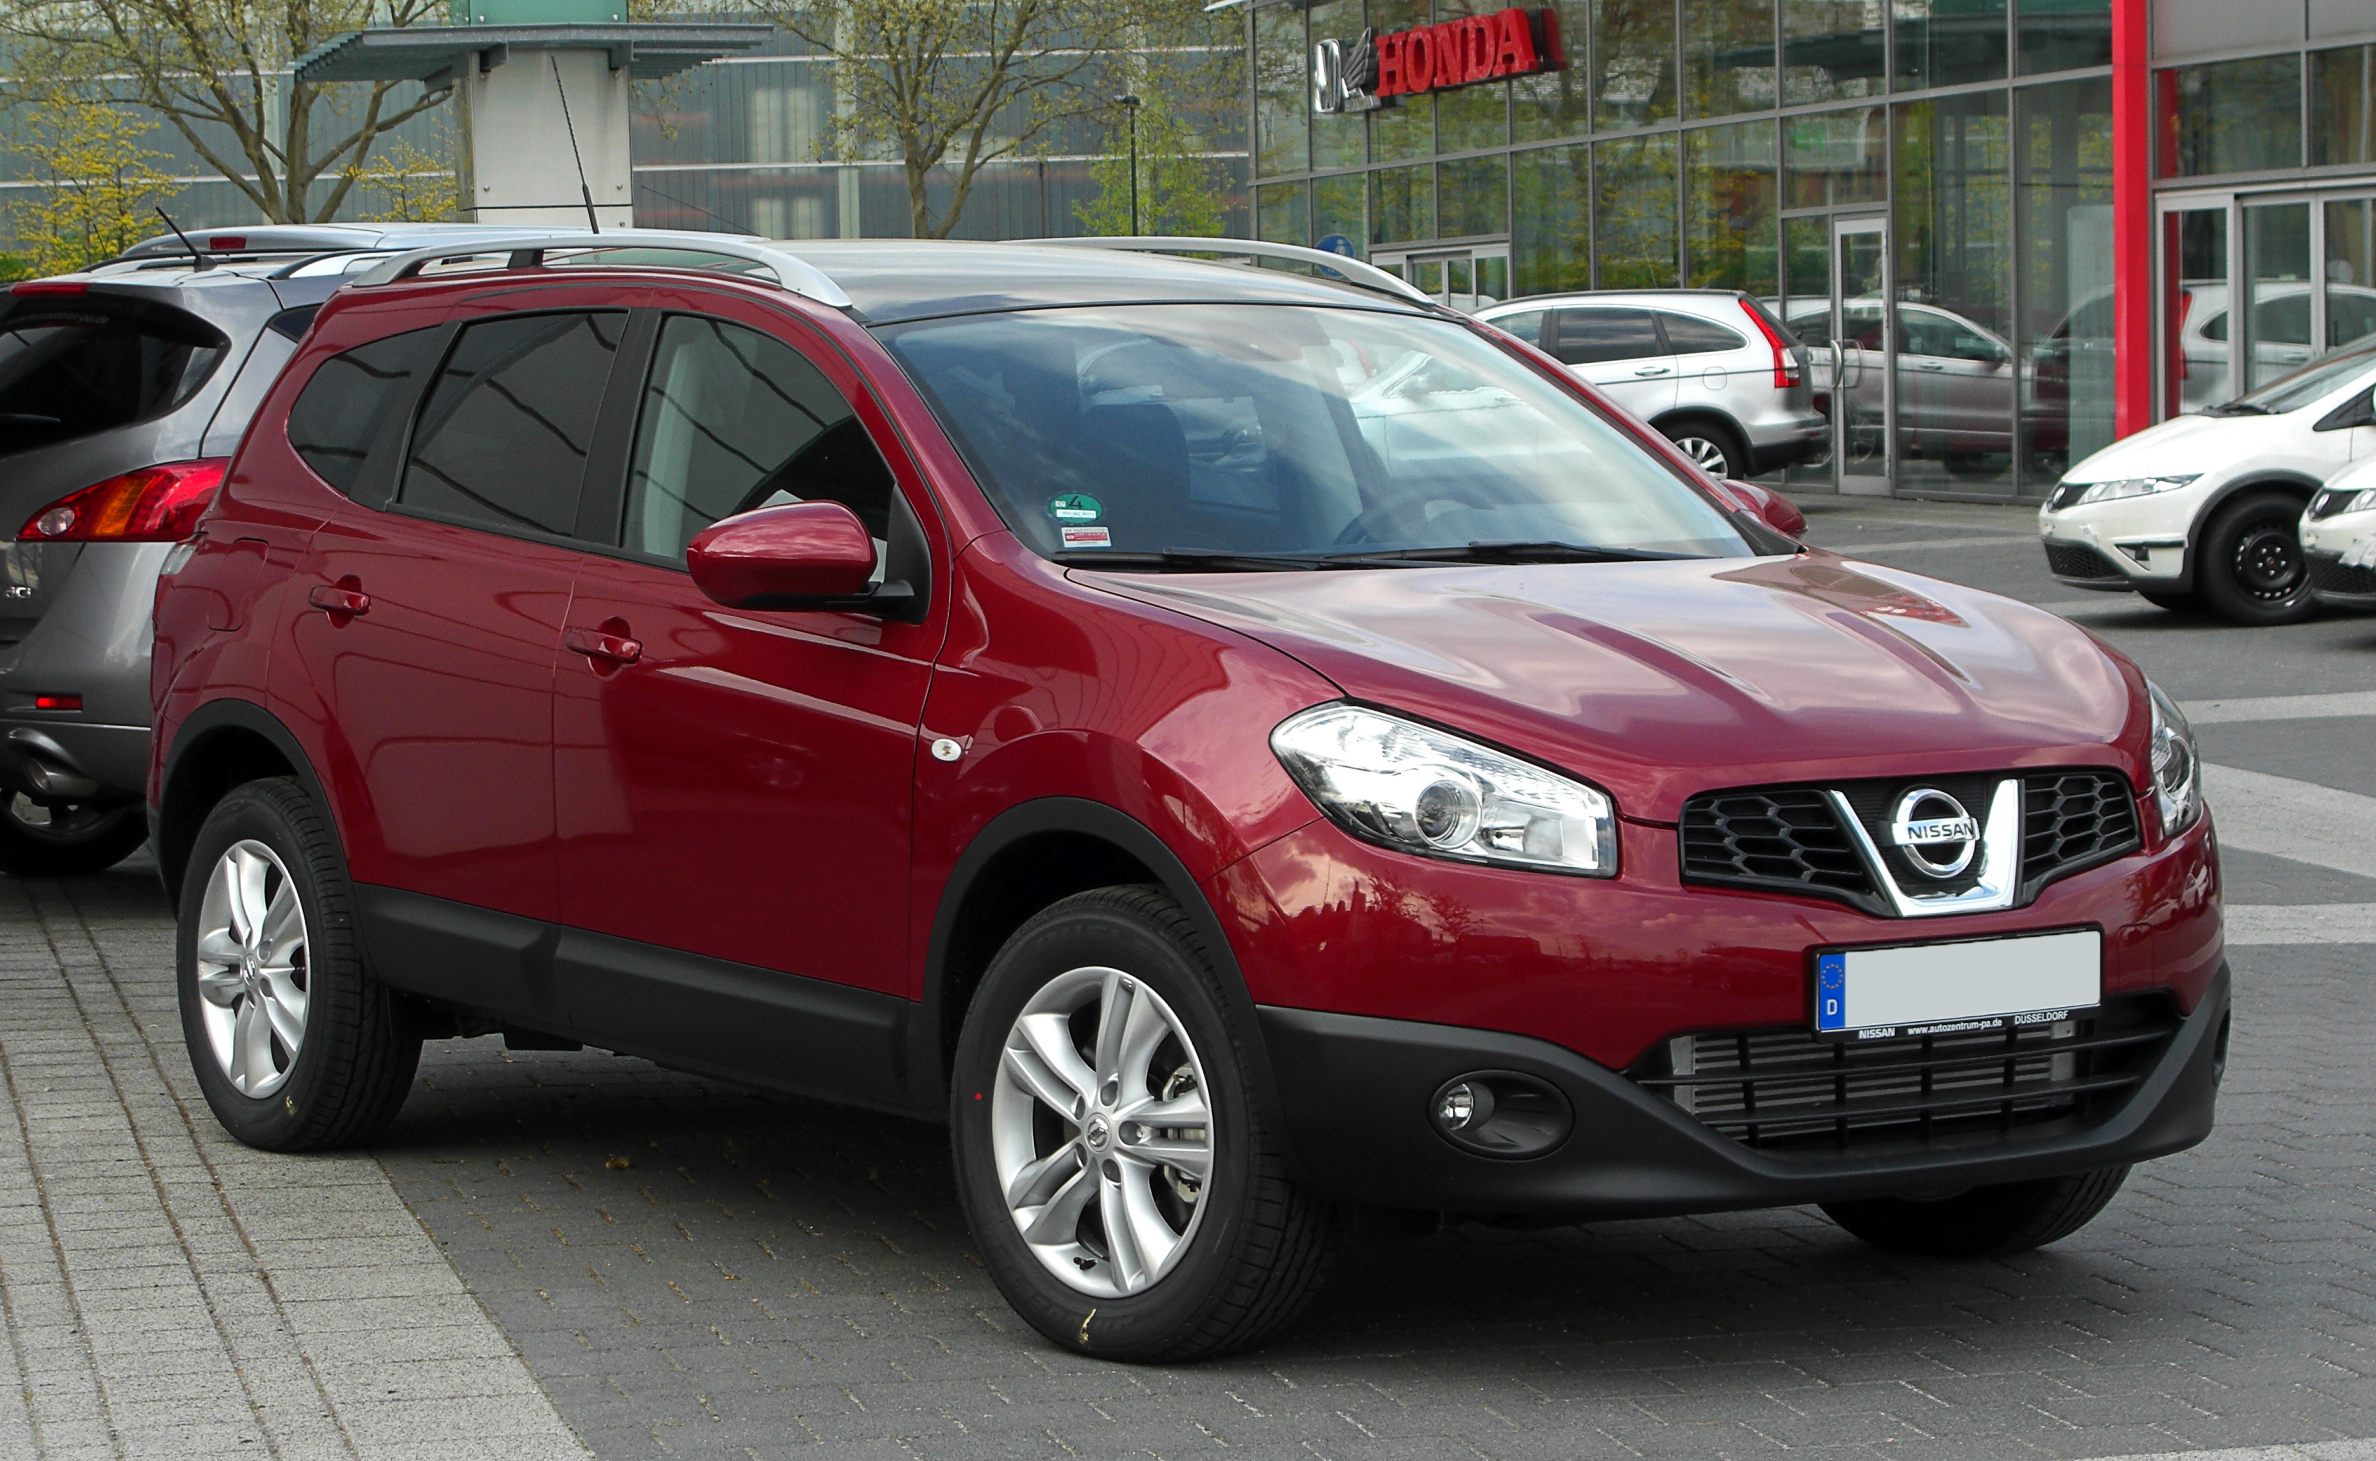 file nissan qashqai 2 dci facelift frontansicht 16 april 2011 d wikimedia. Black Bedroom Furniture Sets. Home Design Ideas